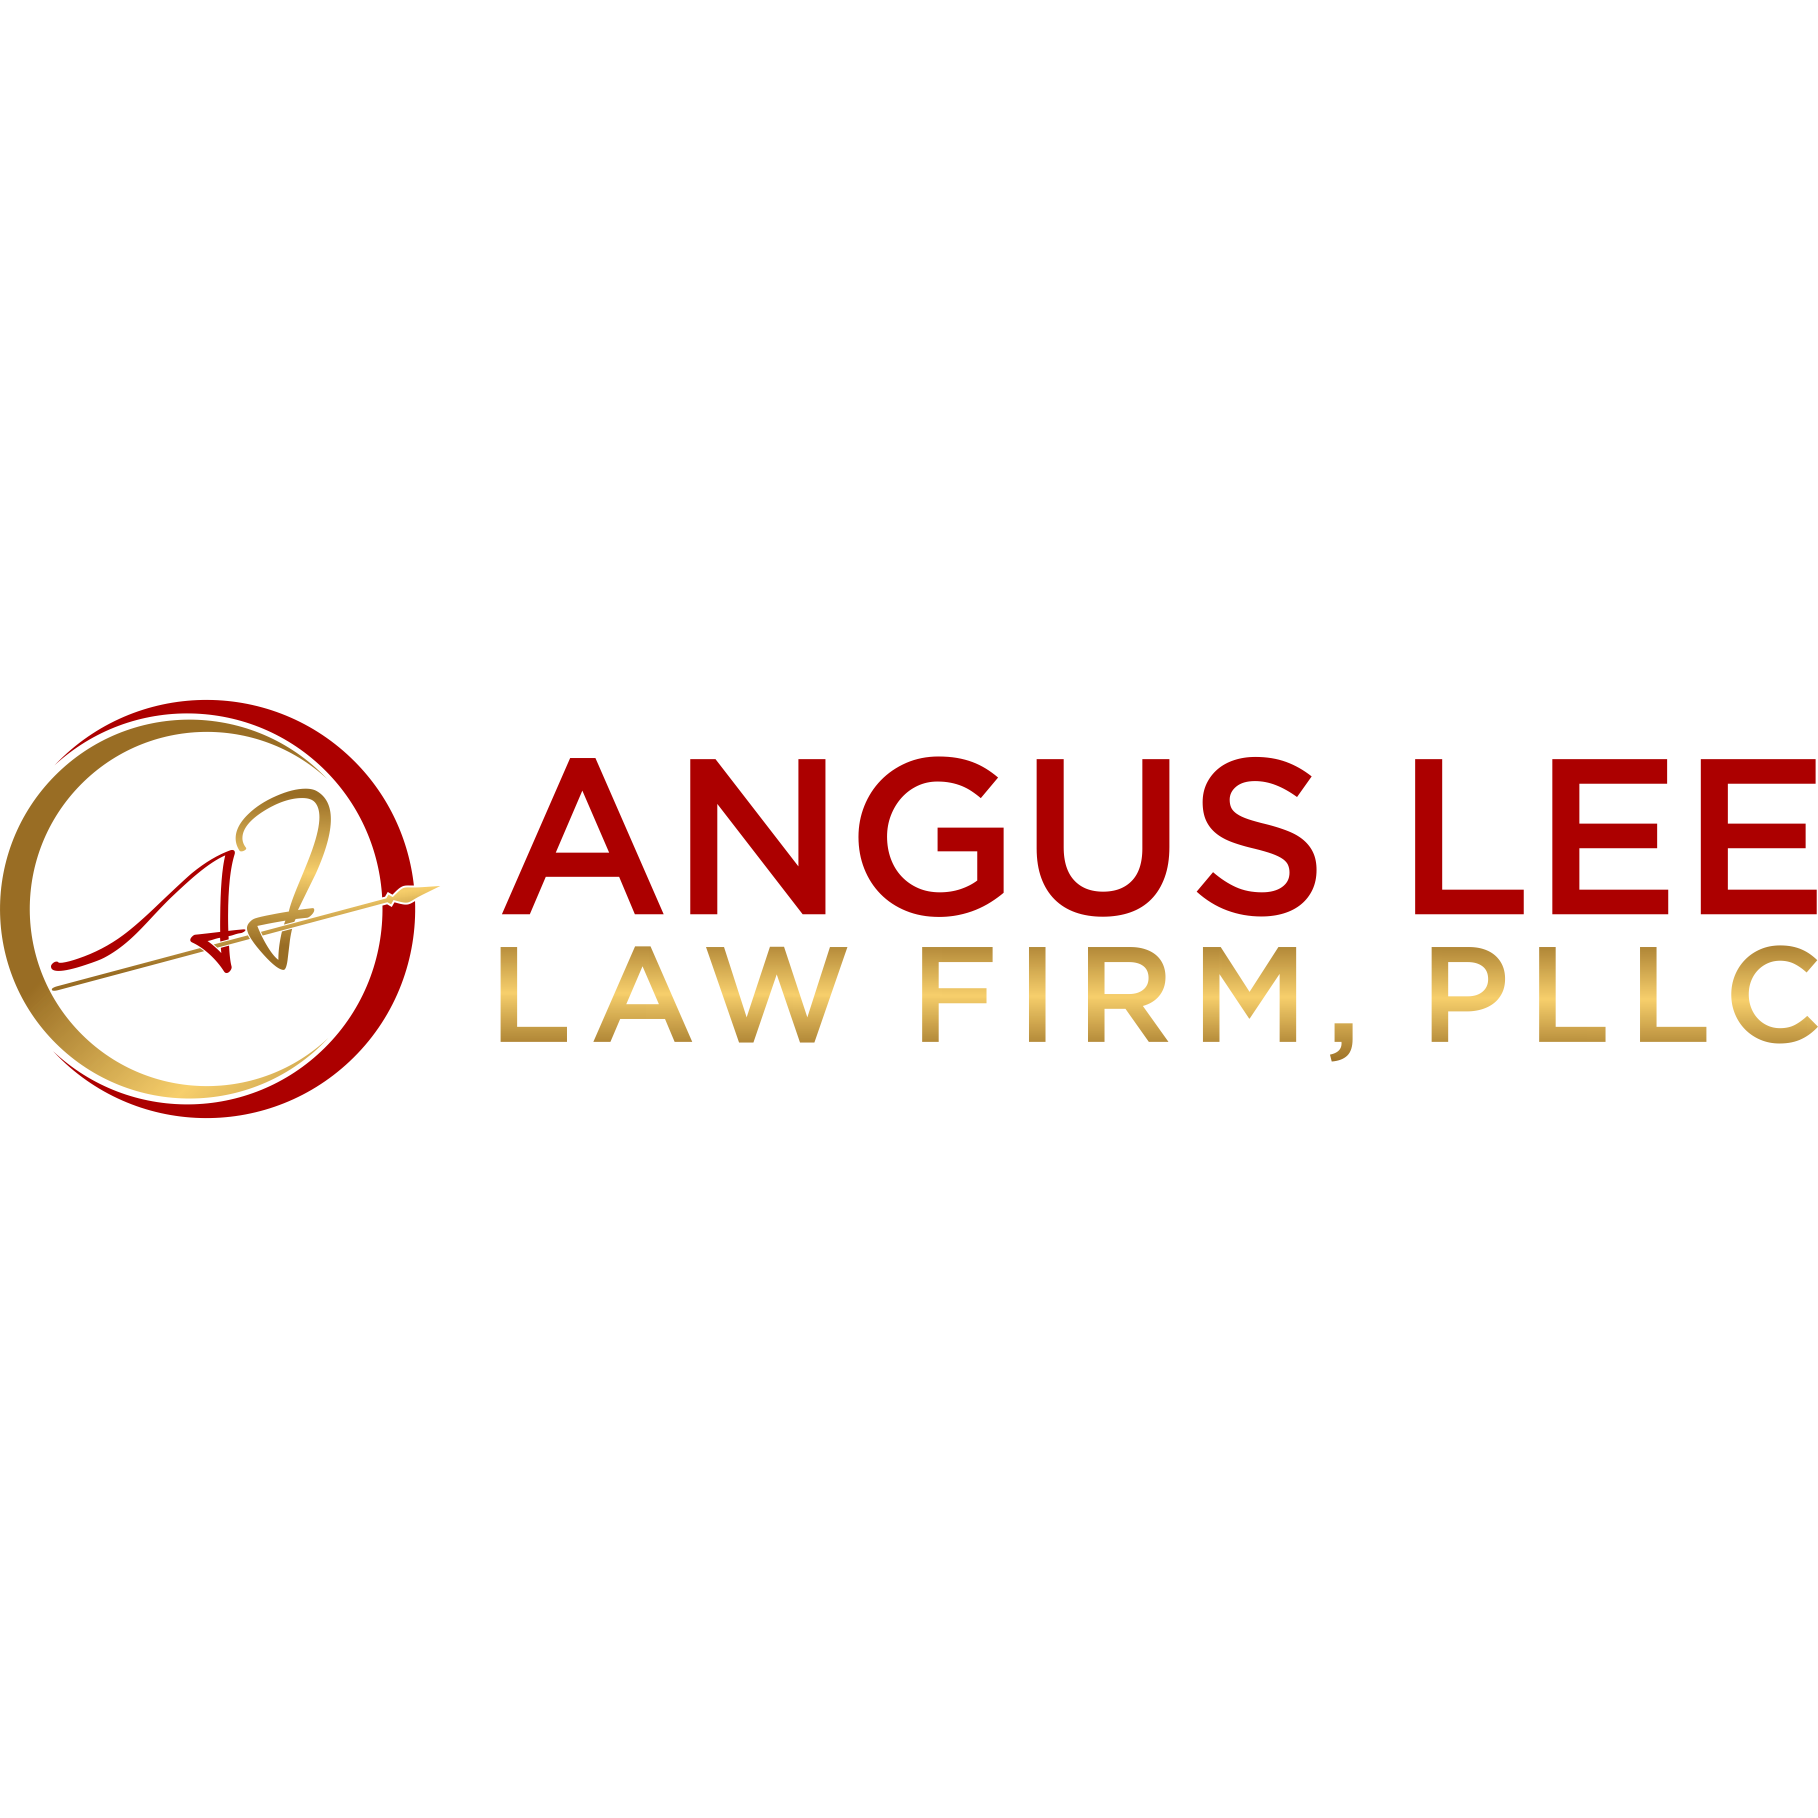 Criminal Justice Attorney in WA Vancouver 98665 Angus Lee Law Firm 9105a Ne Hwy 99 Suite 200 (800)691-0039